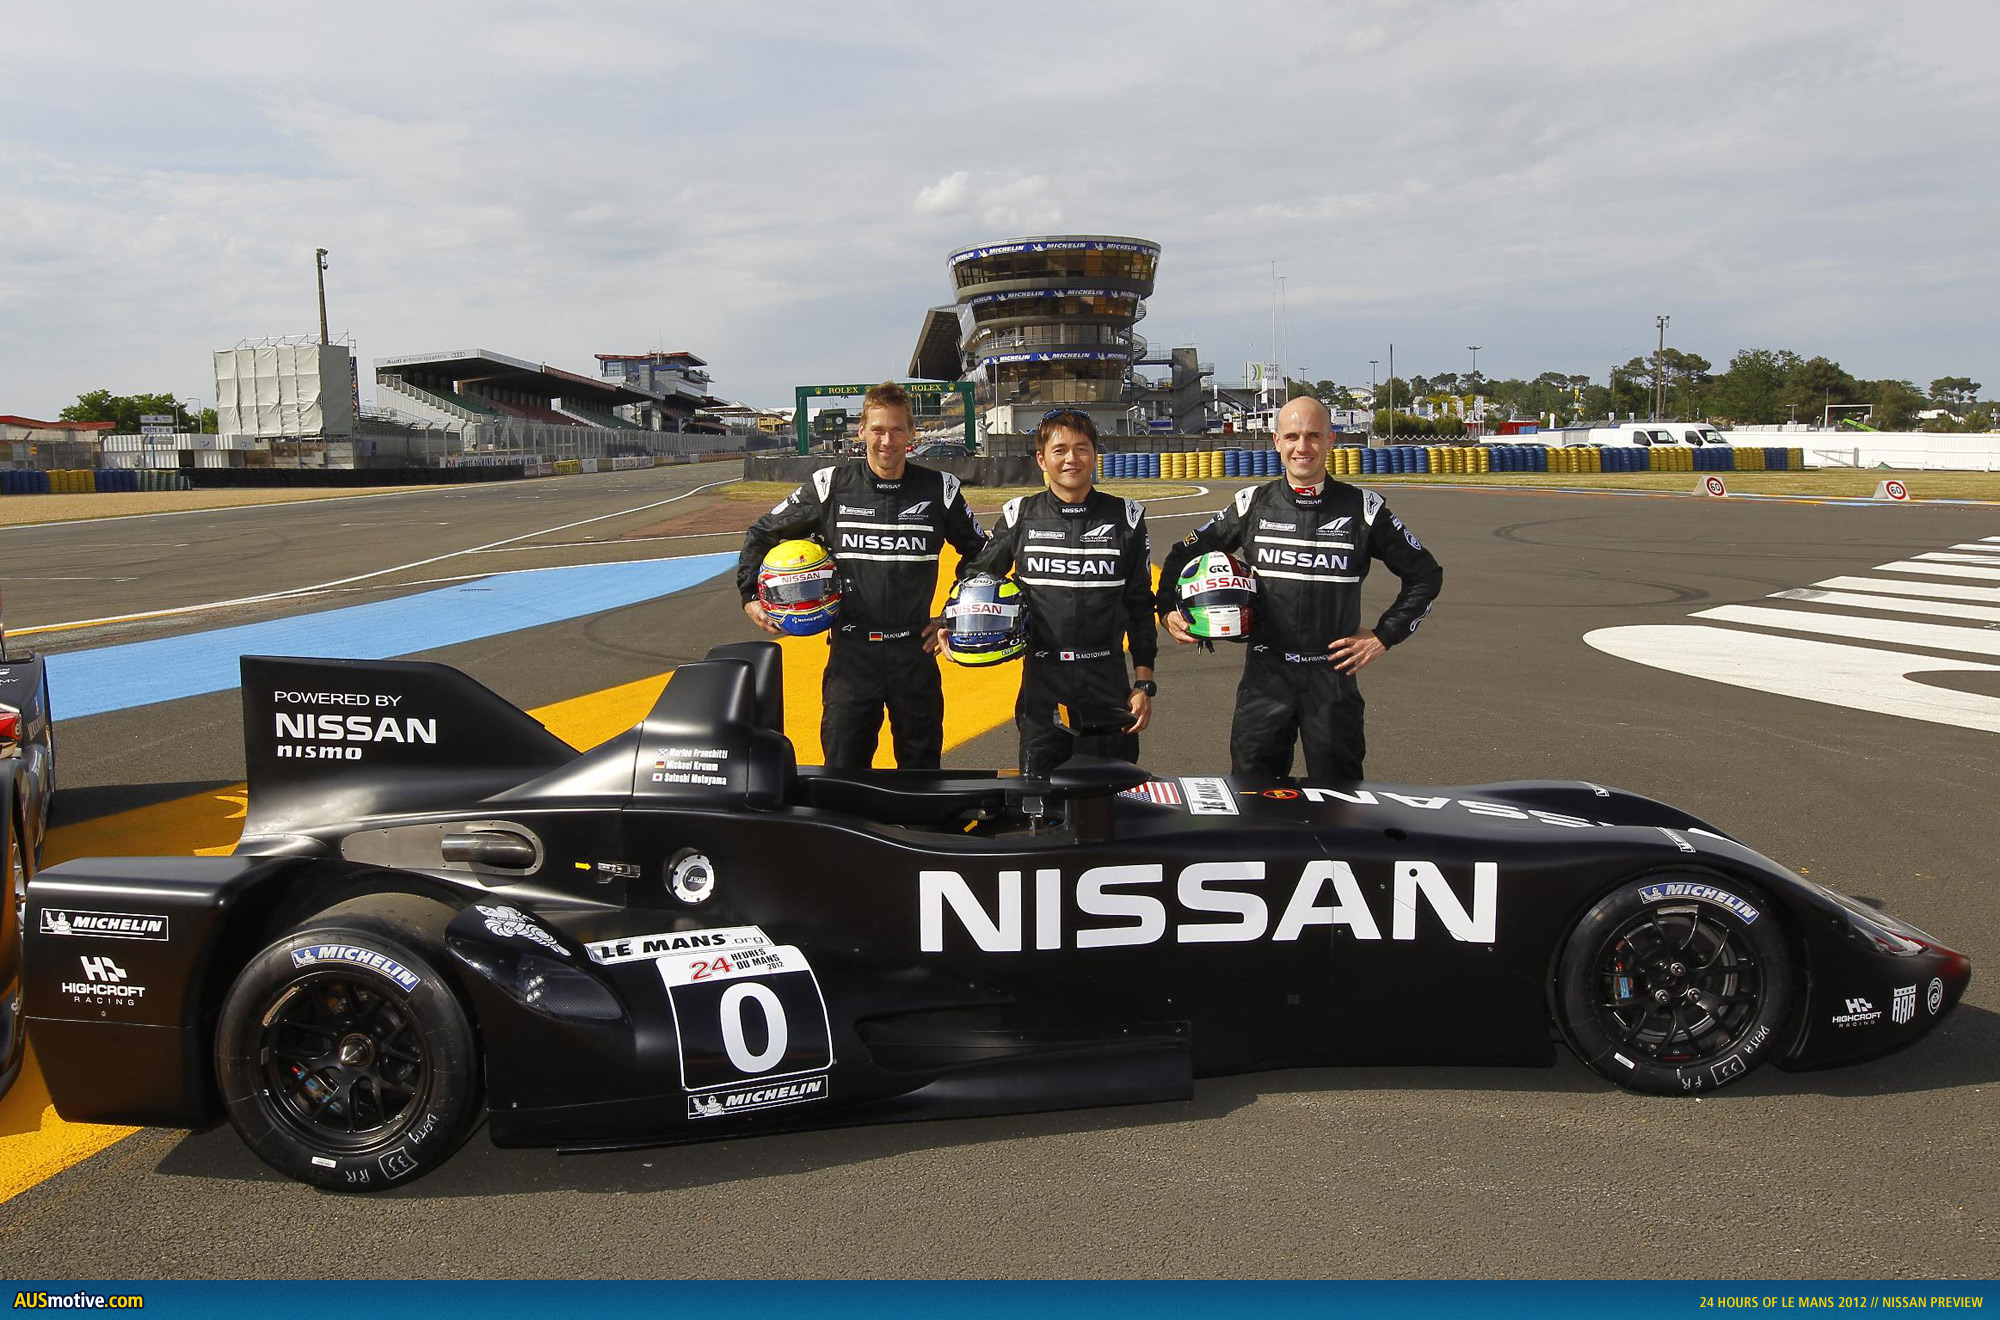 nissan previews 24 hours of le mans. Black Bedroom Furniture Sets. Home Design Ideas